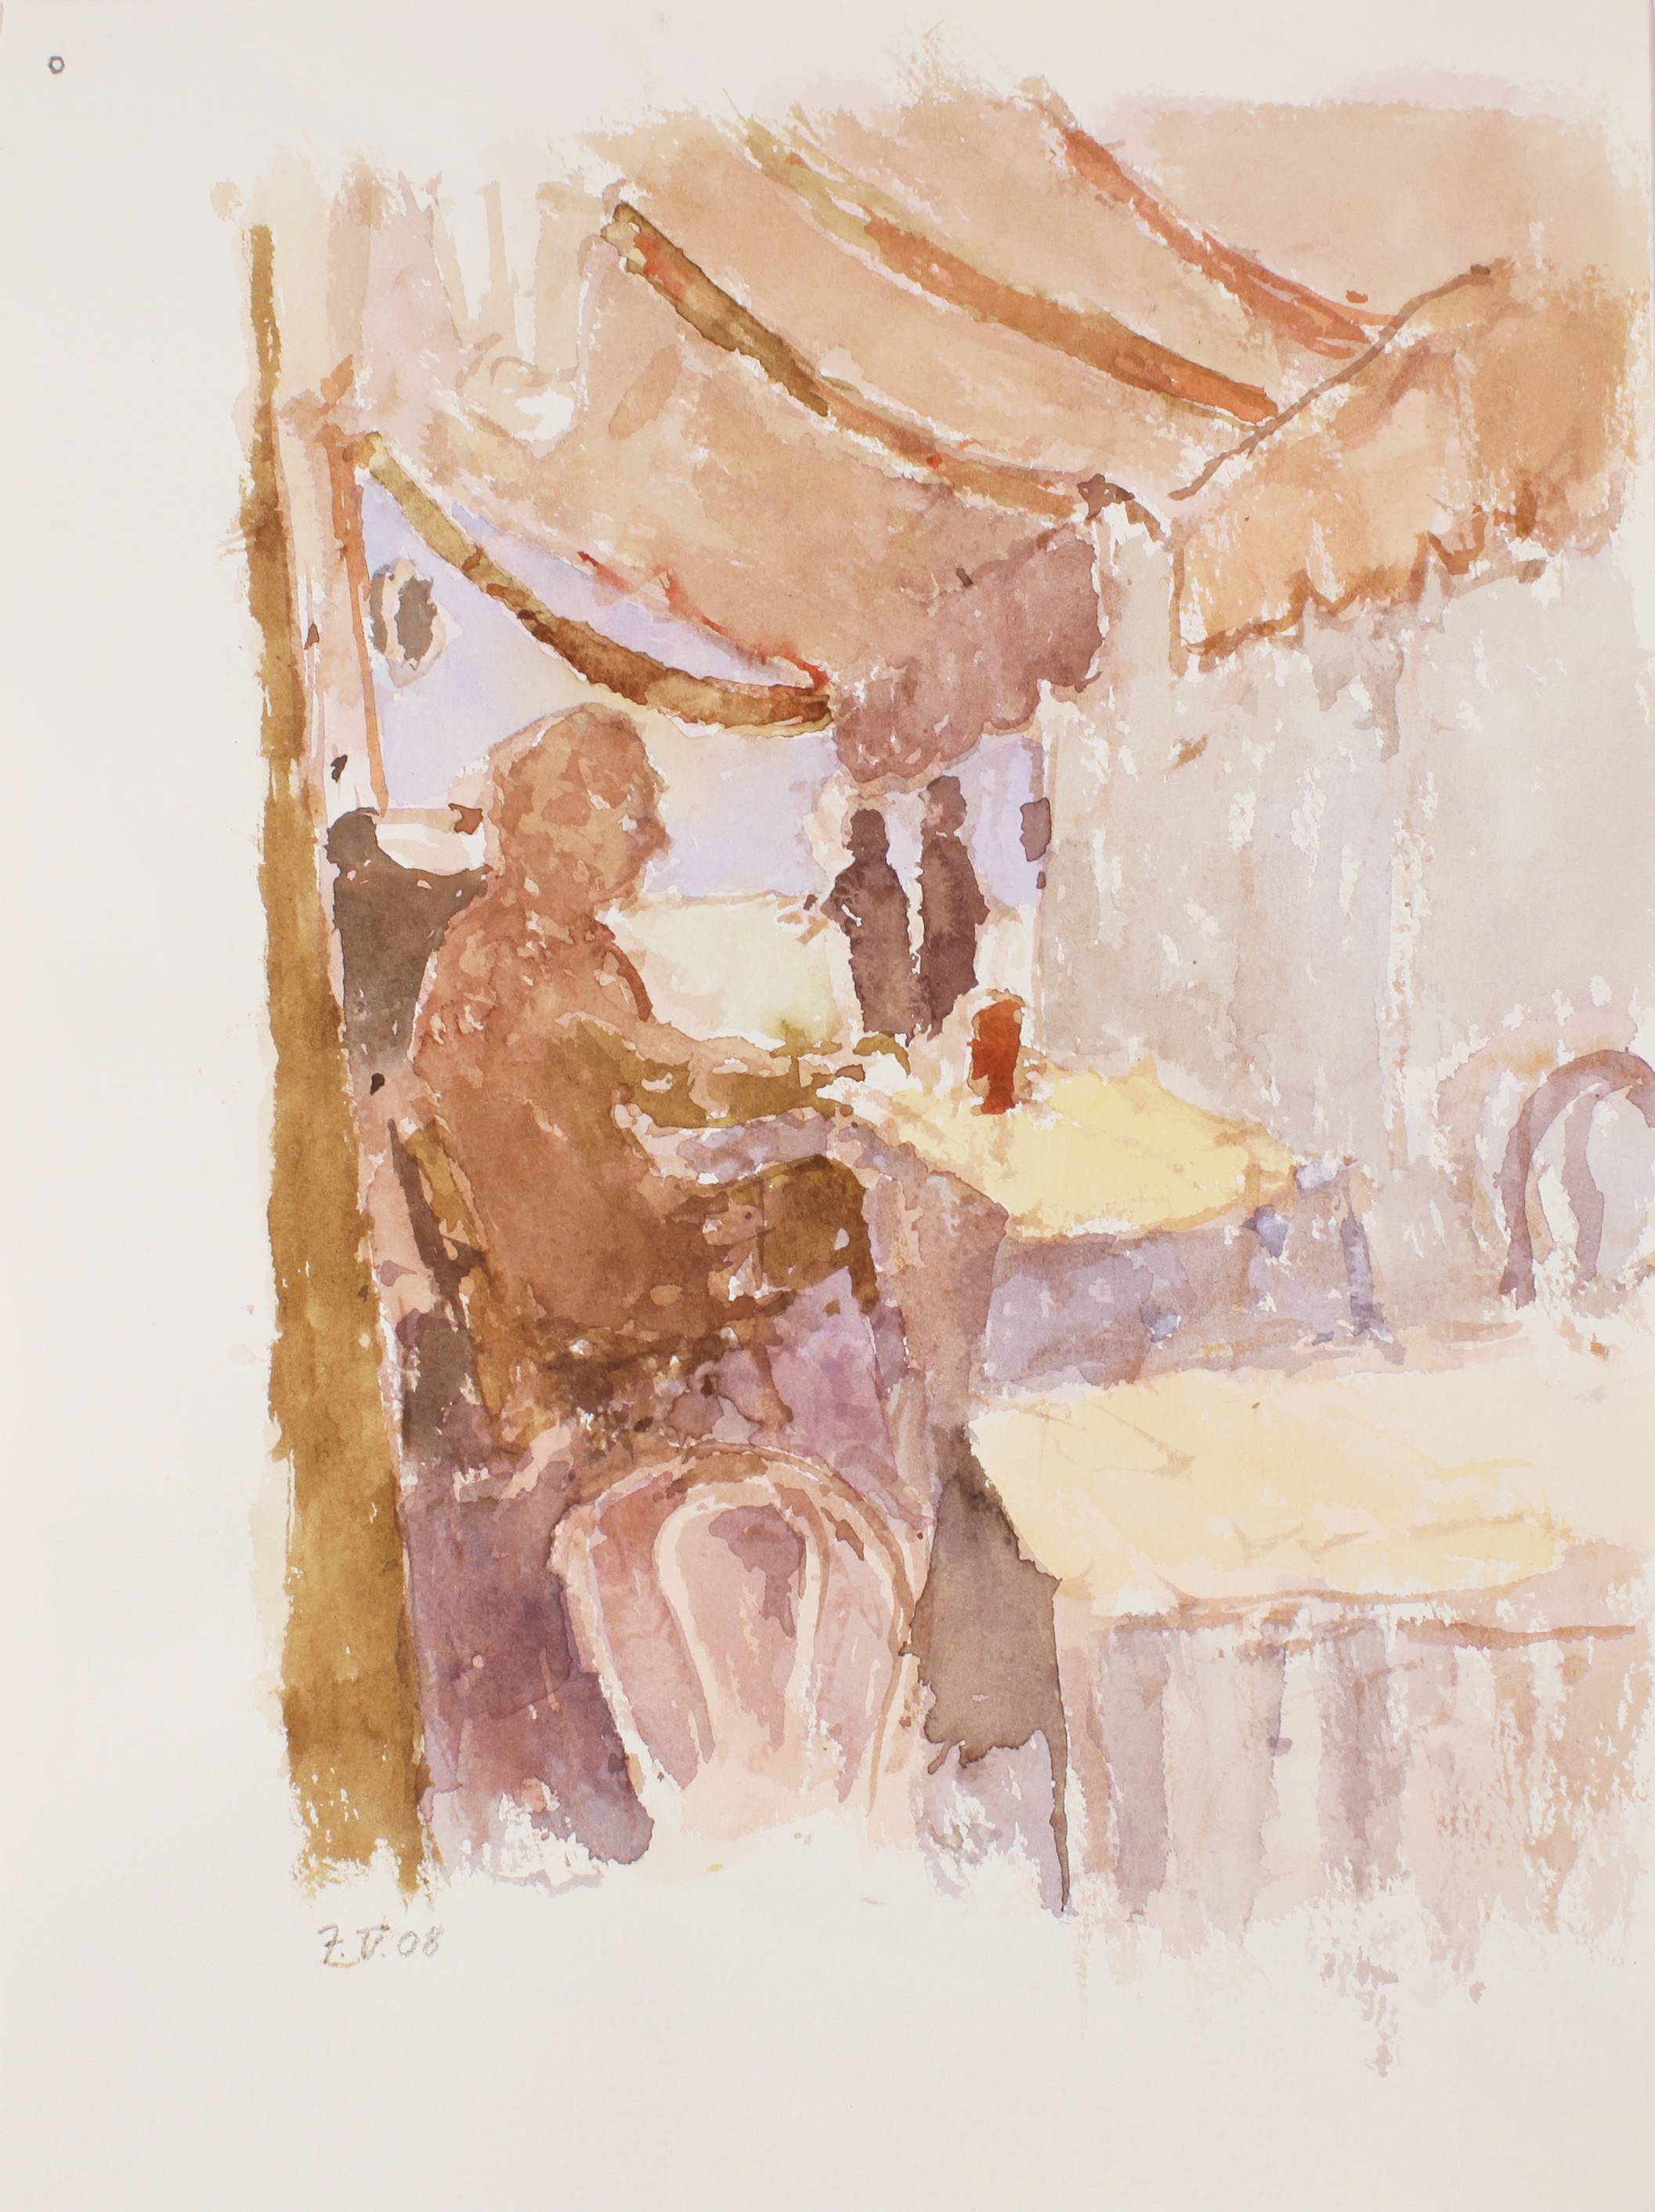 2008_Venice_Cafe_near_Lagoon_watercolour_on_paper_15x11in_WPF422.jpg